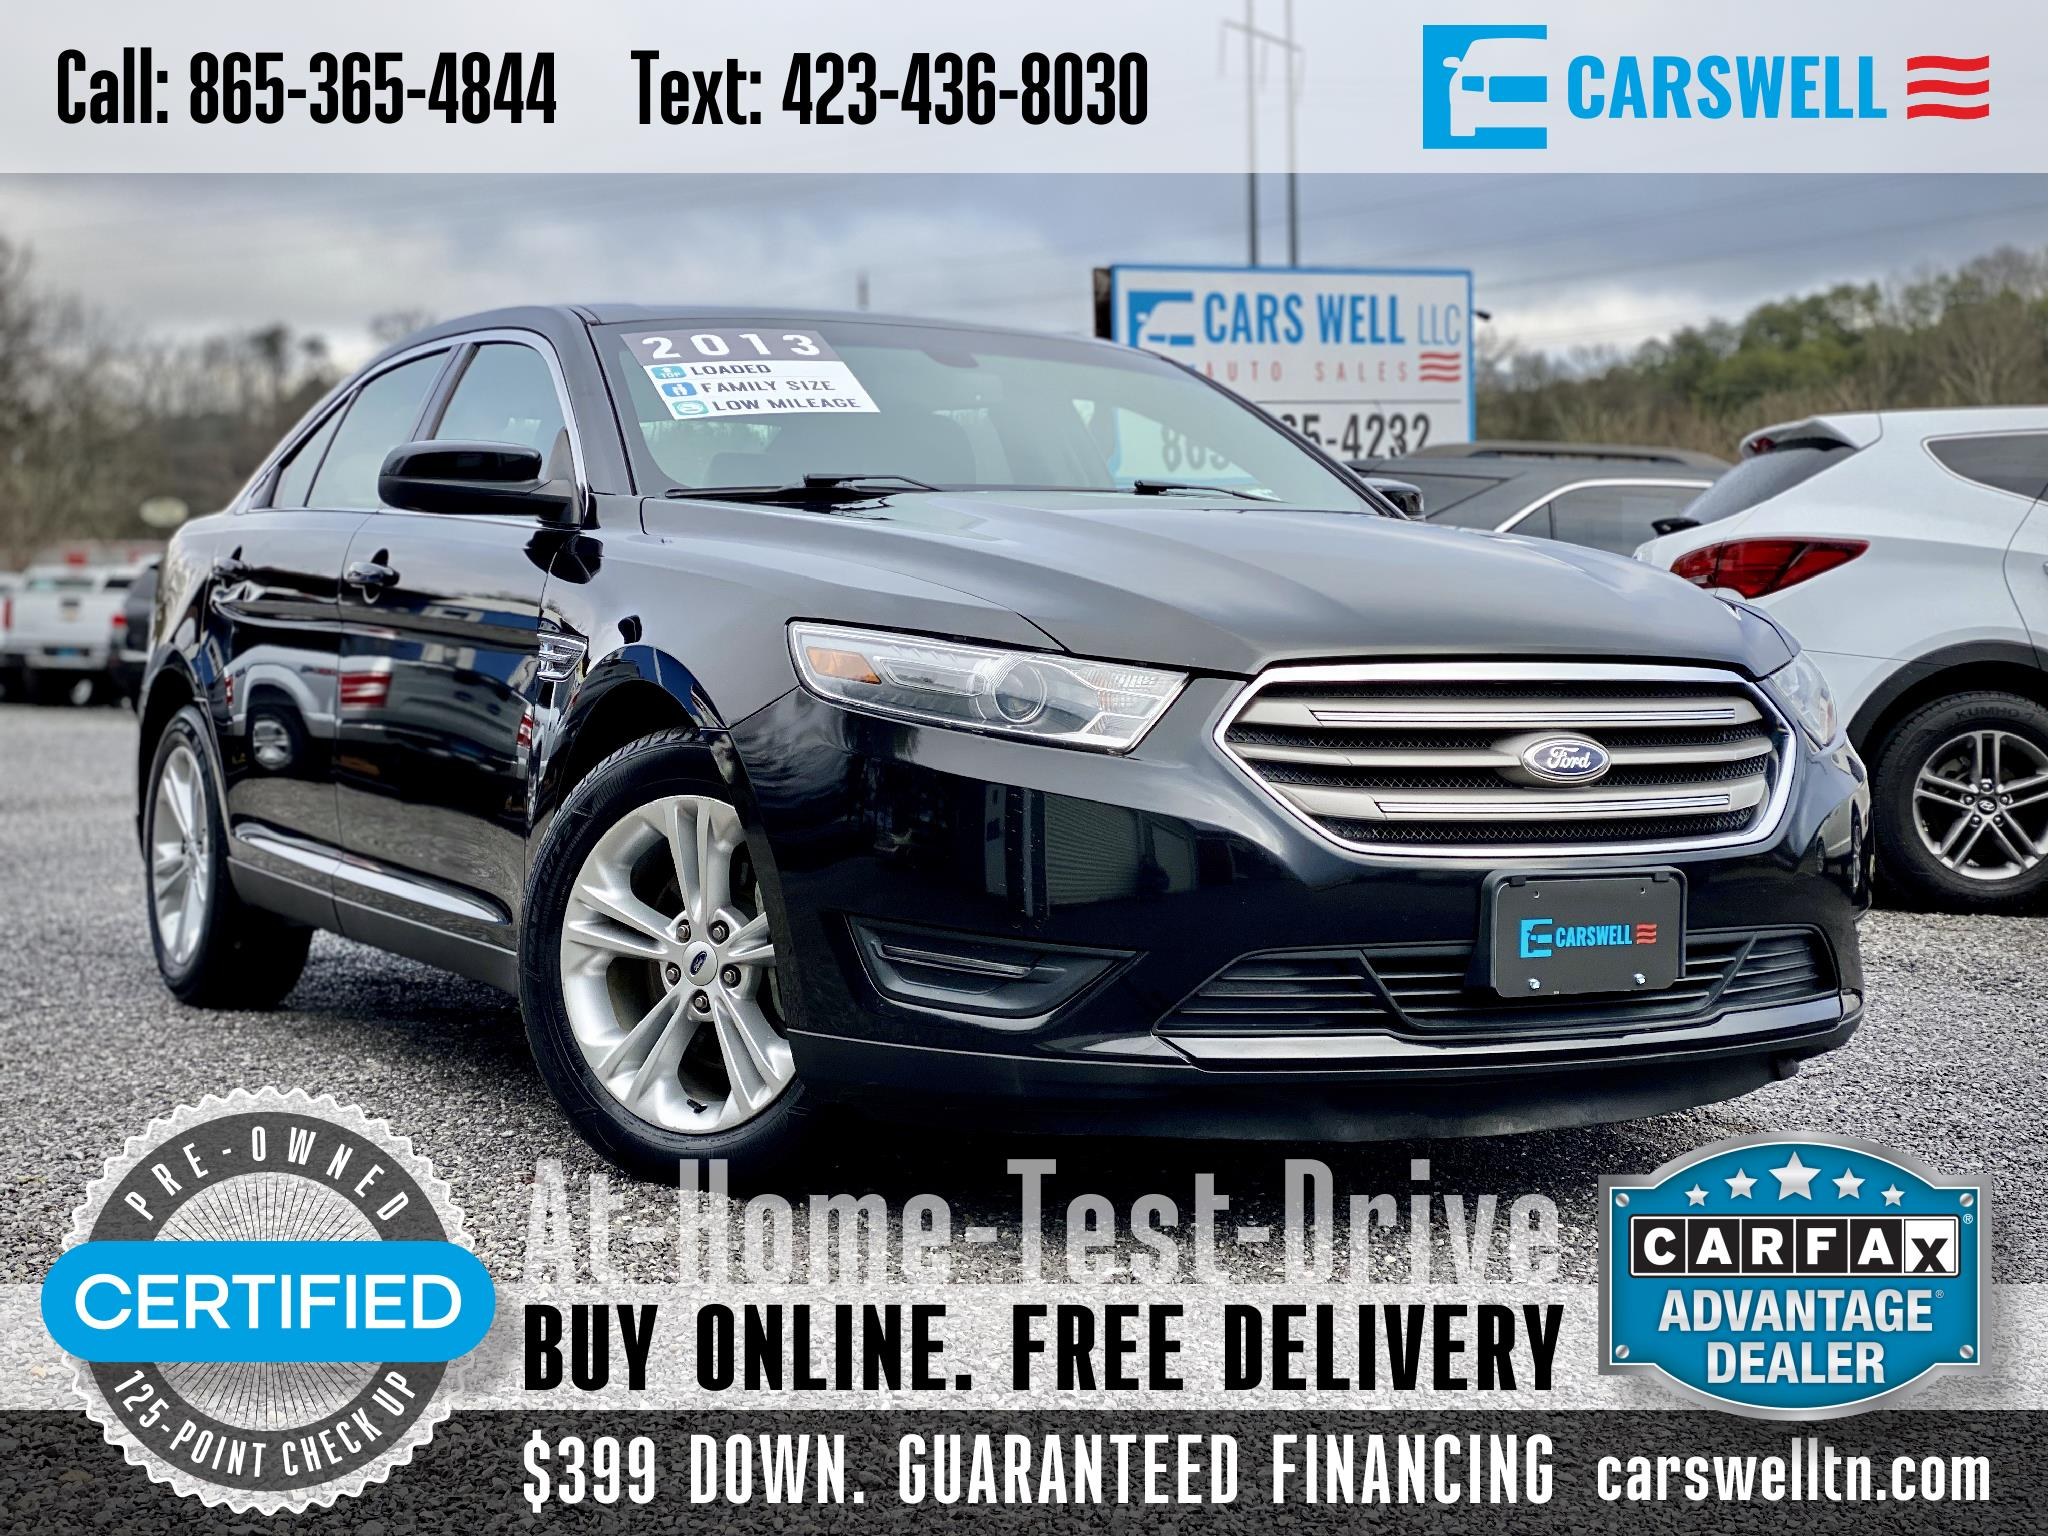 Ford Taurus 4dr Sdn SEL FWD 2013